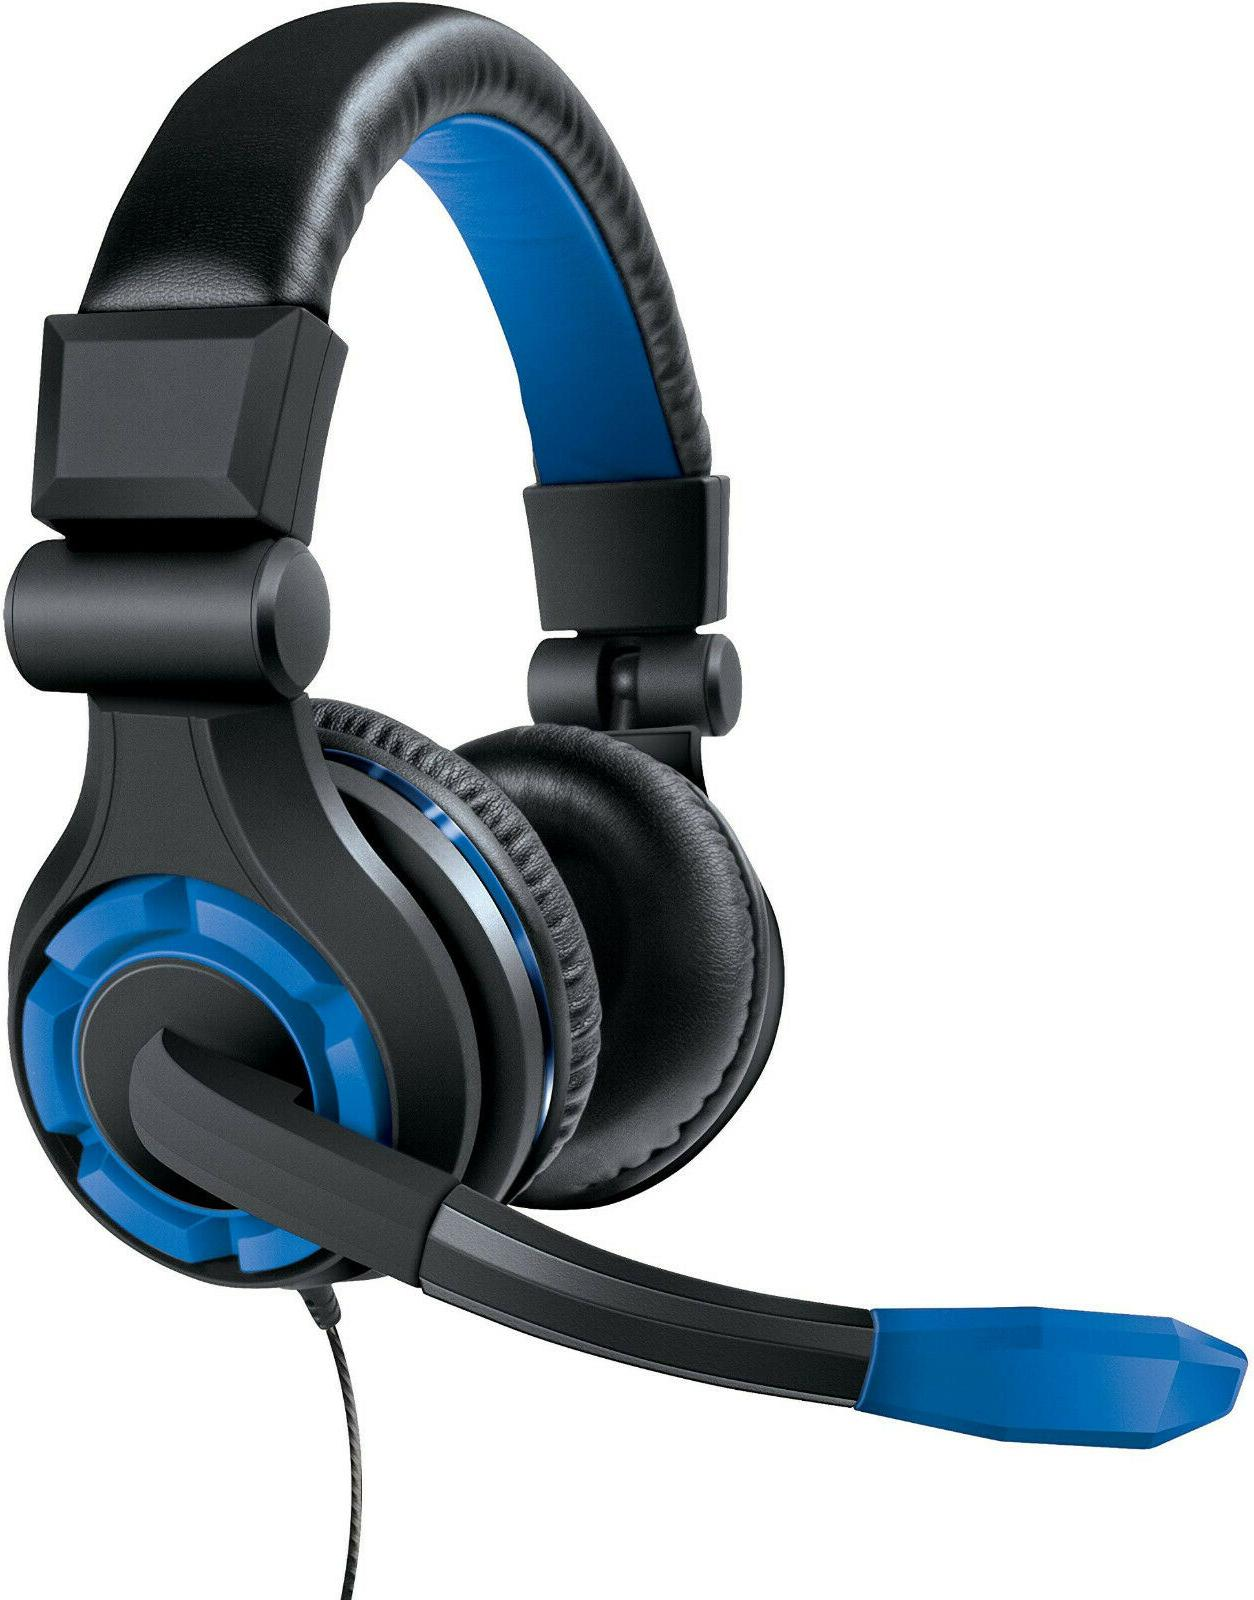 GRX-340 Gaming for PS4, with Mic